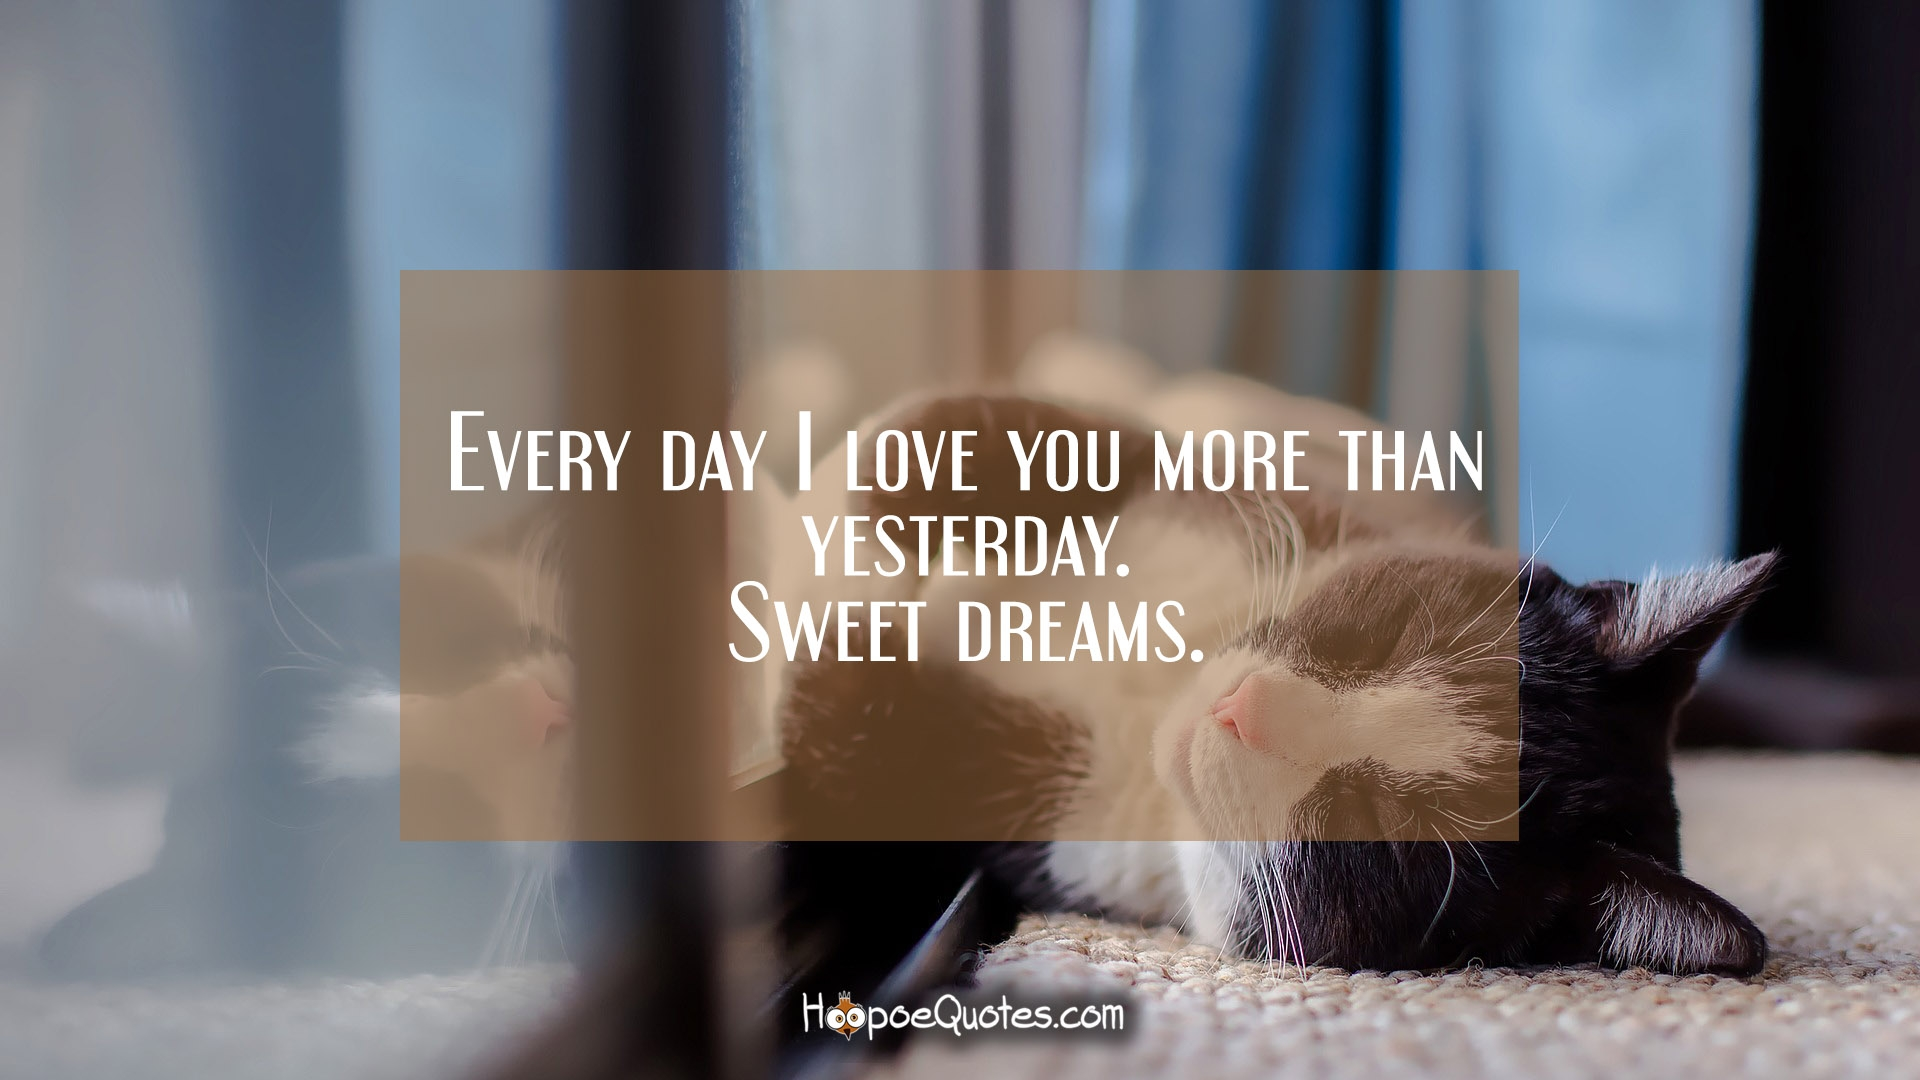 Quotes I Love You More Every Day: Every Day I Love You More Than Yesterday. Sweet Dreams